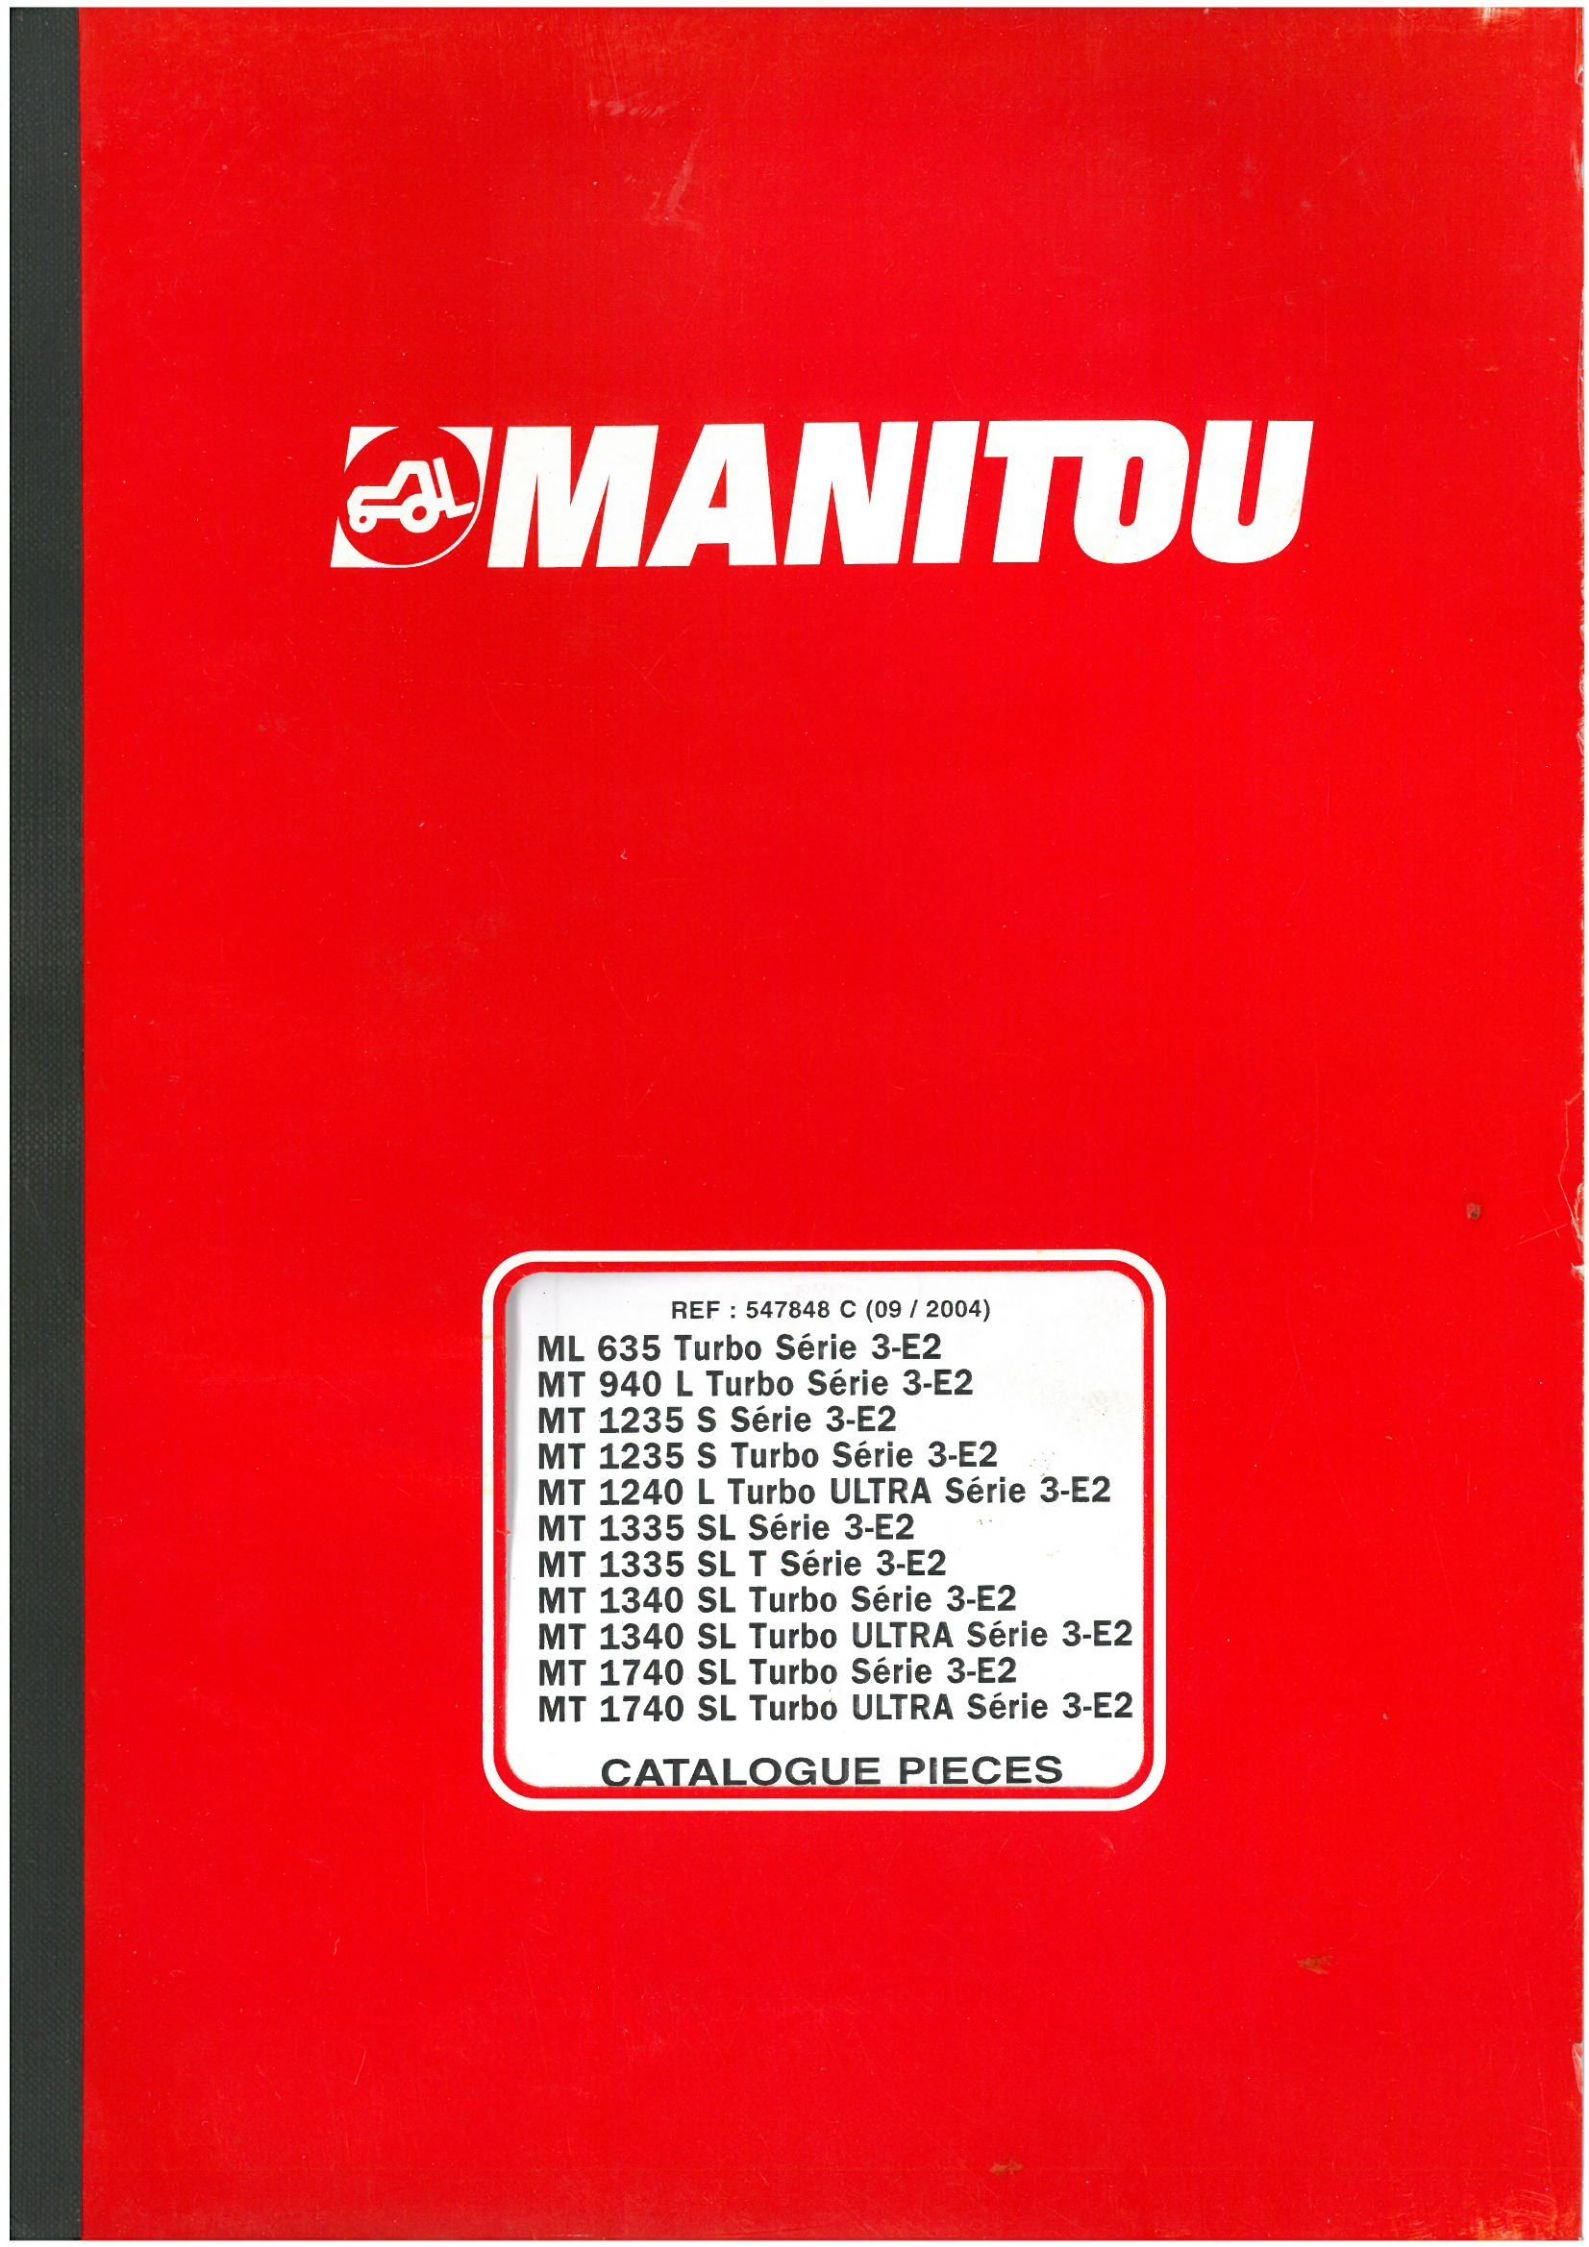 Manitou Maniscopic Telescopic Handler ML 635 - MT 940 1235 1240 1335 on forklift relay, forklift maintenance diagram, parts of a forklift diagram, forklift fork diagram, schumacher battery charger parts diagram, forklift operating manual, forklift driving tips, forklift inspection diagram, forklift brake diagram, forklift steering diagram, mitsubishi forklift parts diagram, cat forklift parts diagram, forklift hydraulic diagram, forklift safety diagram, forklift horn diagram, forklift schematic diagram, forklift mast diagram, forklift engine diagram, limitorque valve actuators diagram, flowserve actuator parts diagram,